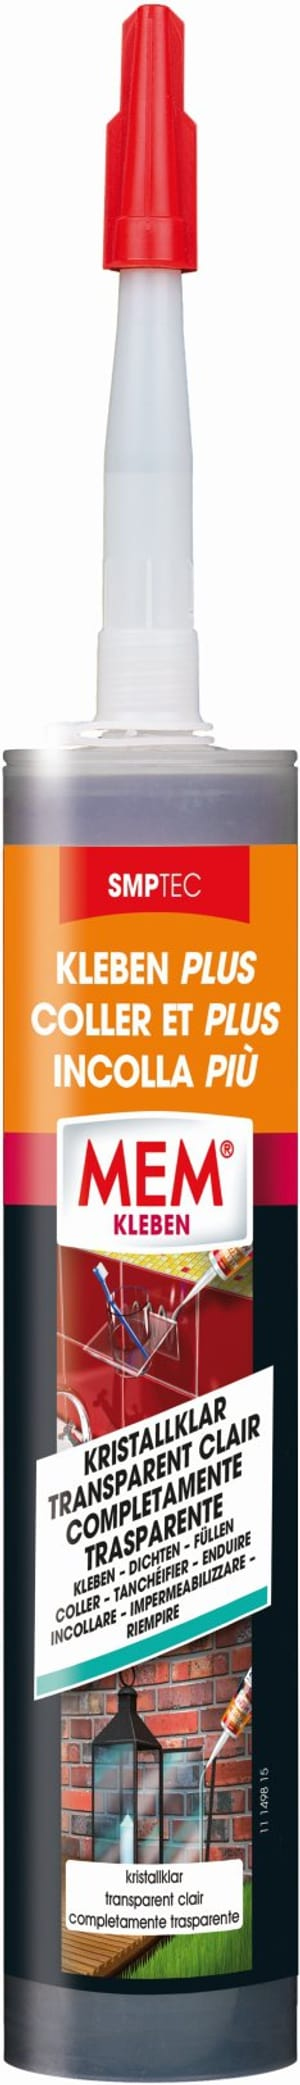 Coller et plus, transparent clair 300 g